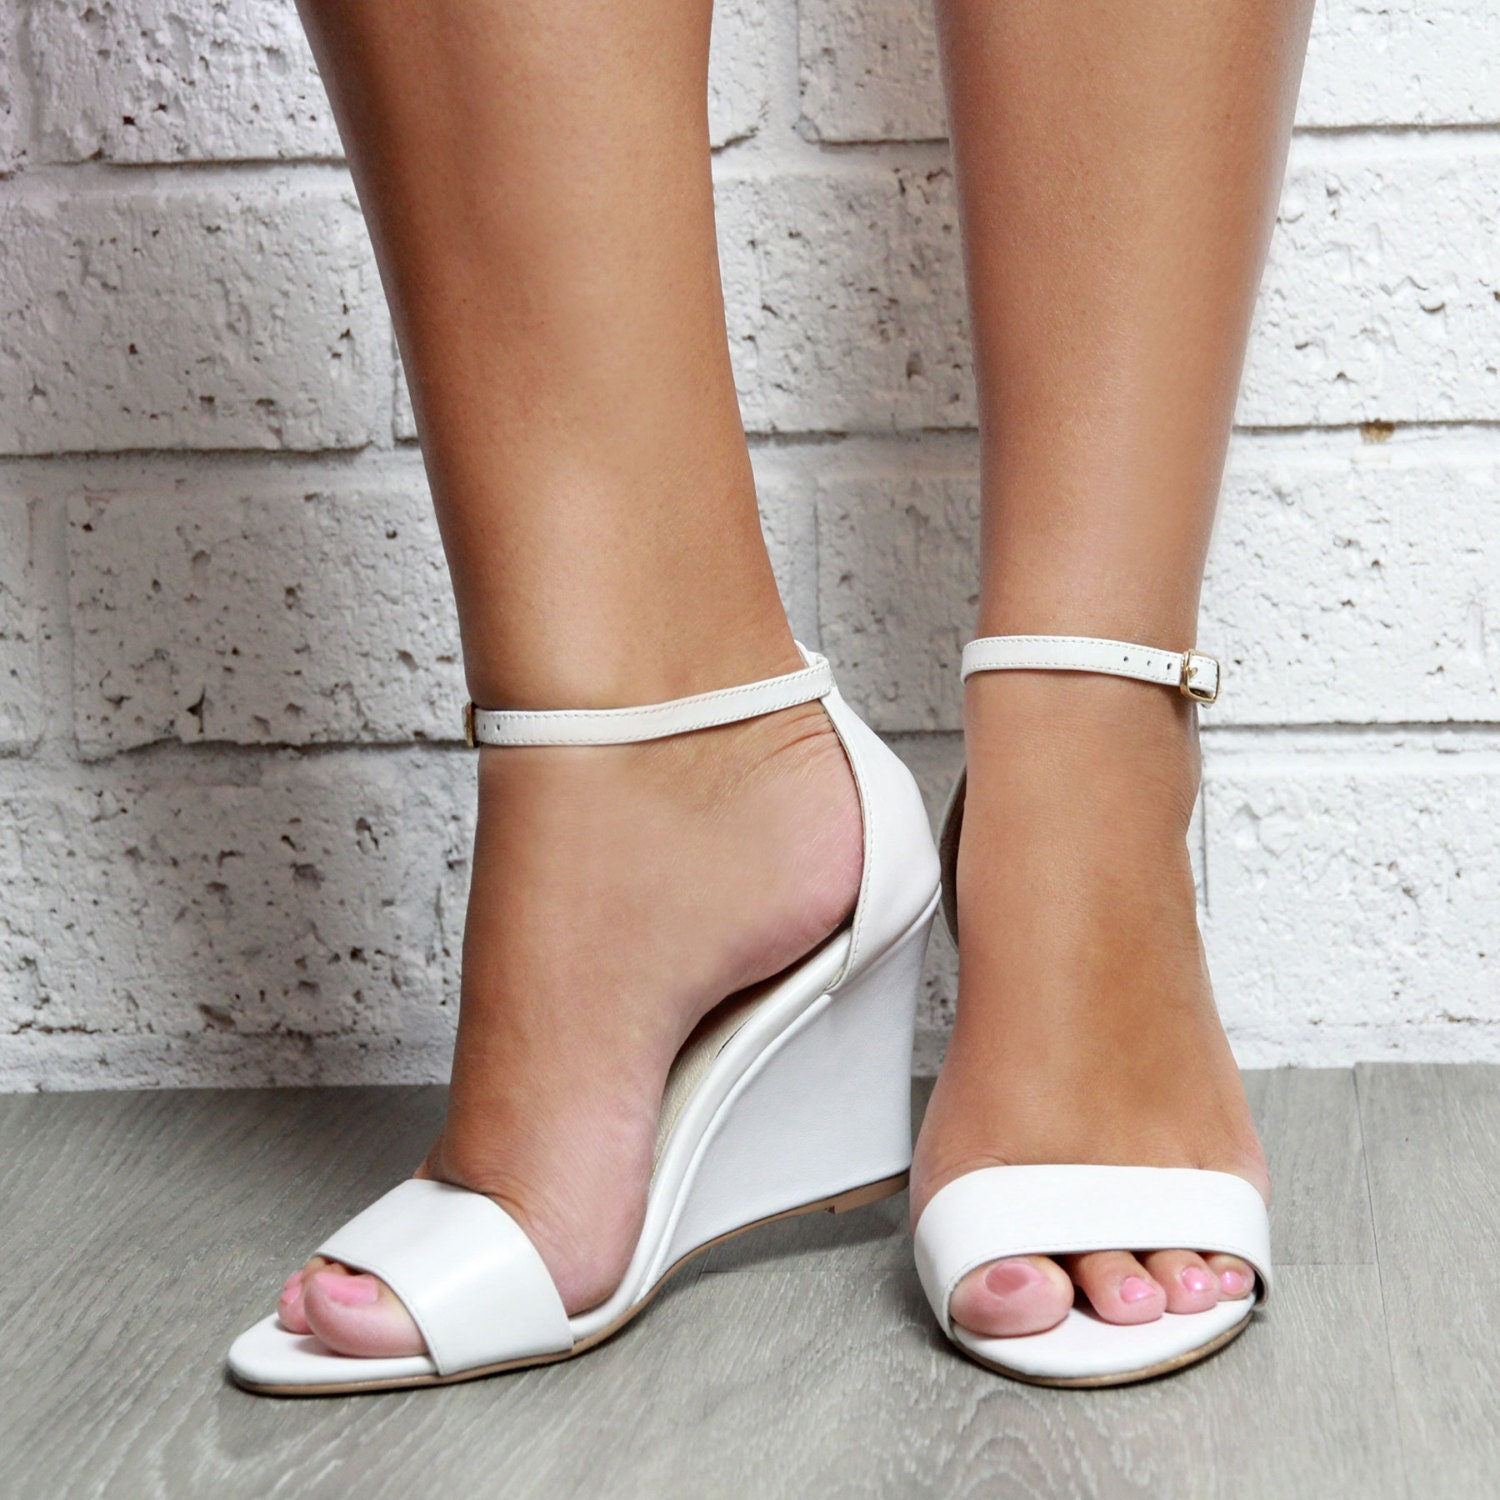 Shopbop has the chic looks that keep you coming back. Shop our collection of wedges white and find the piece you've been searching for. Your style inspiration starts with this distinctive assortment of wedges white.